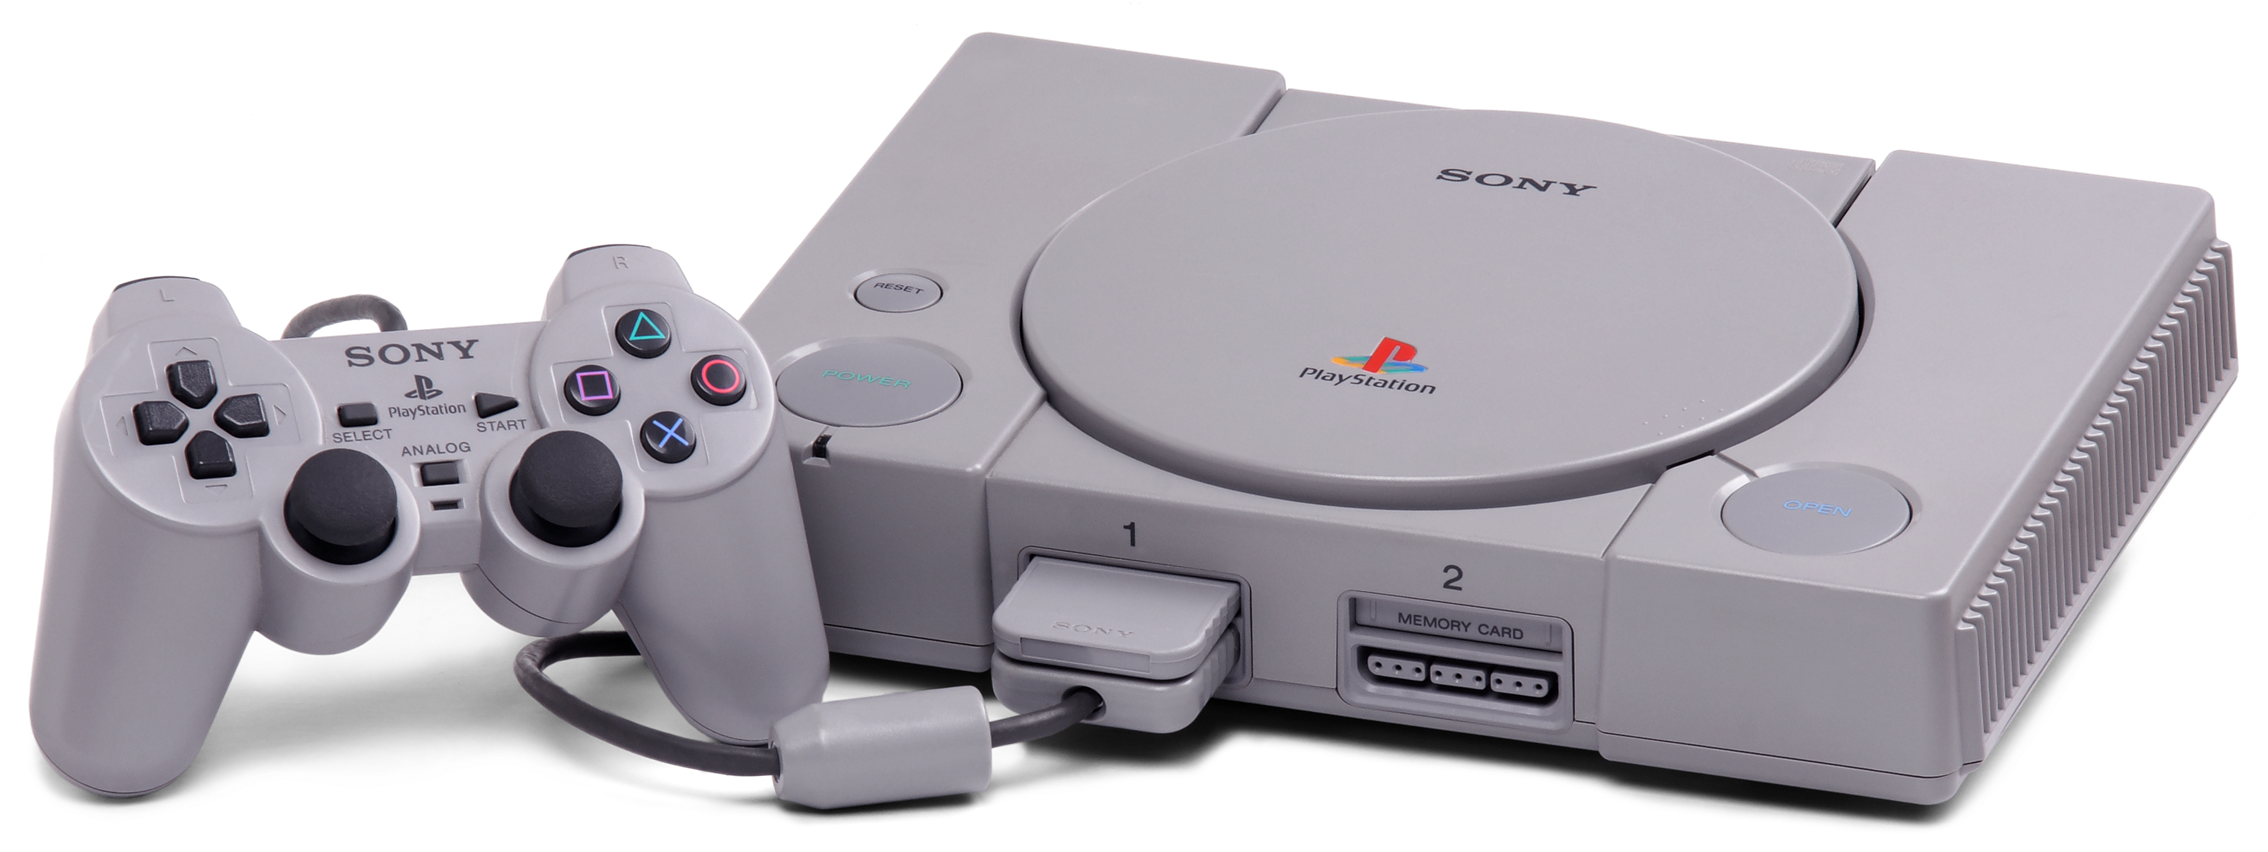 PlayStation PNG Images Transparent Free Download.